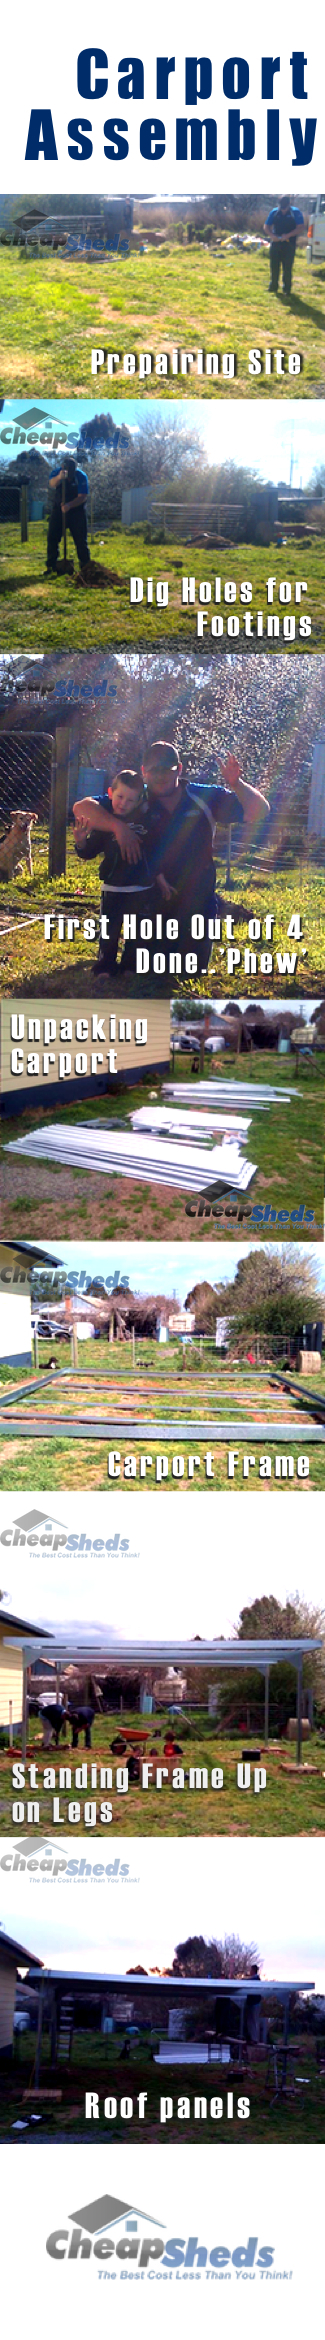 Carport Kit Assembly